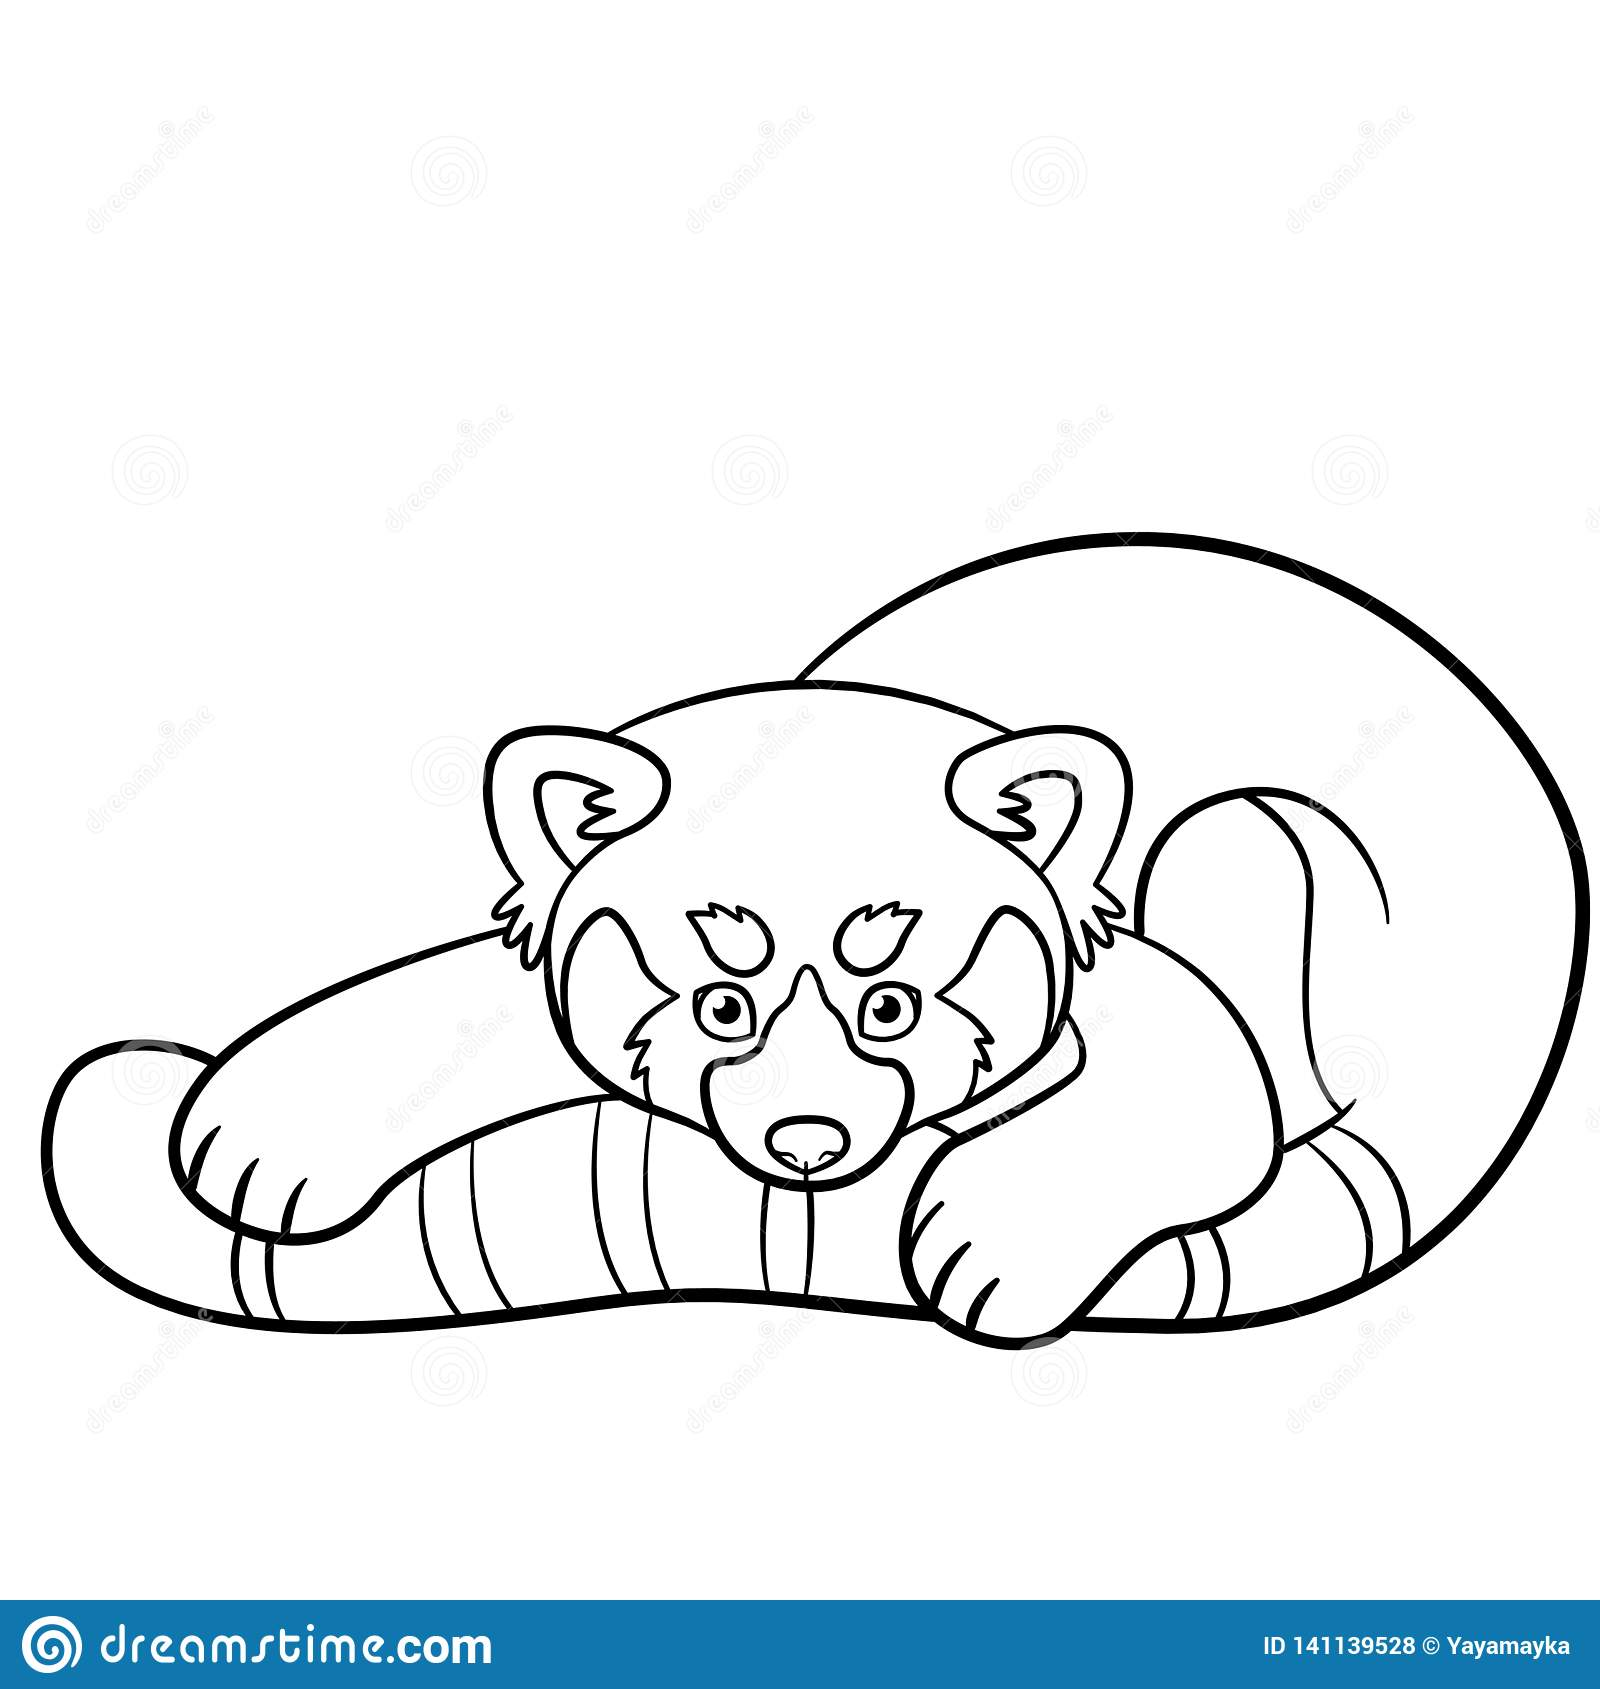 cute baby panda coloring pages | Panda coloring pages, Bird ... | 1689x1600